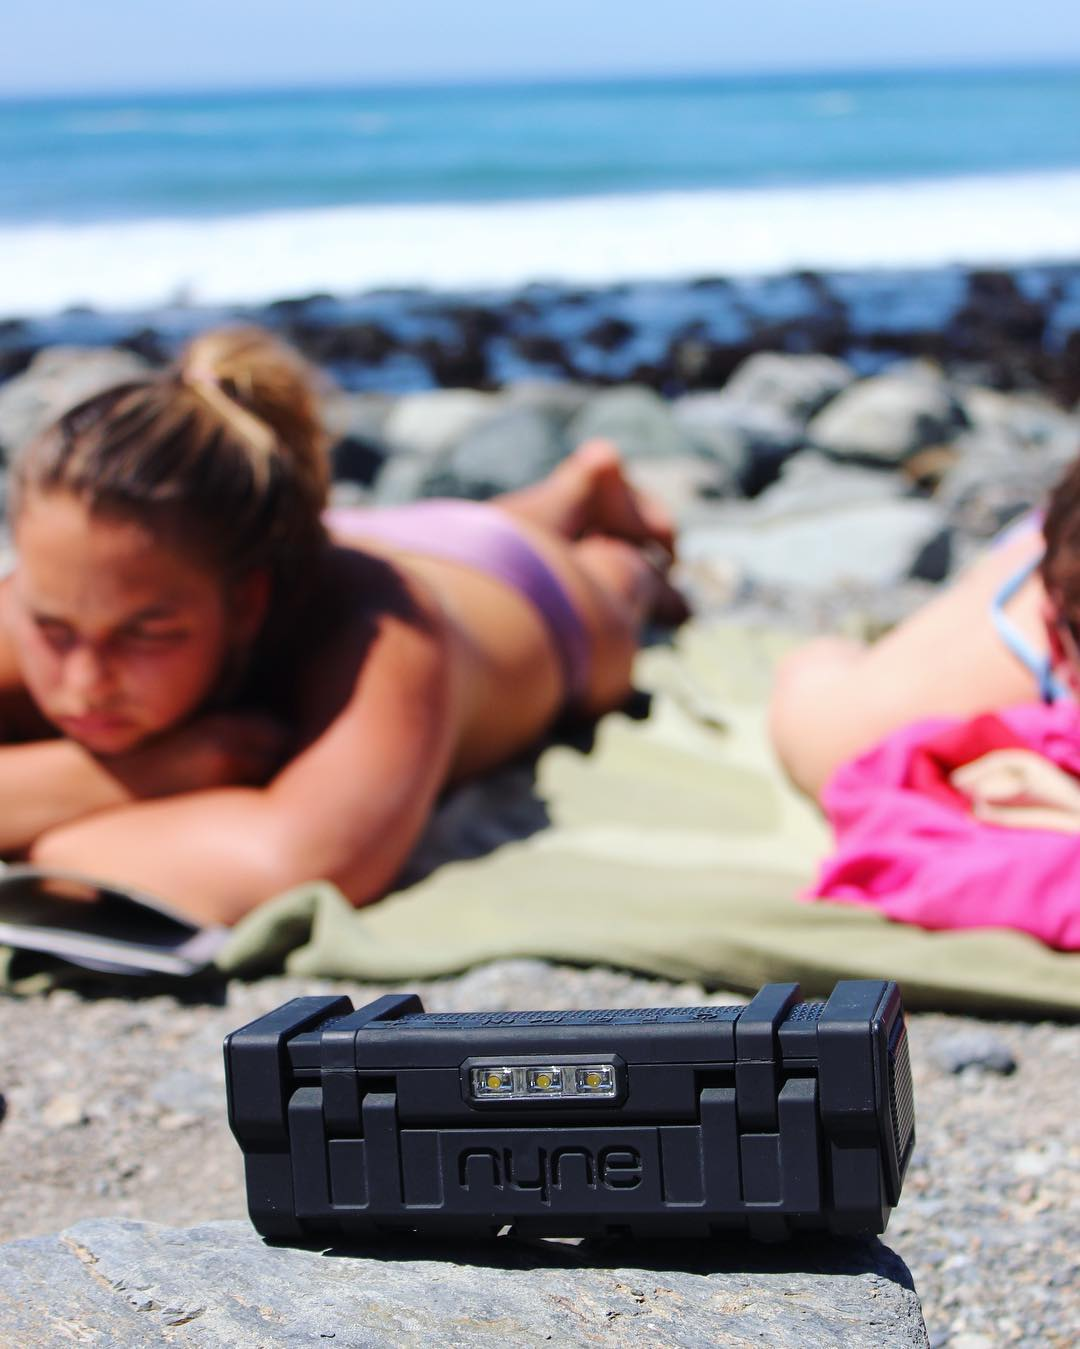 Can it be Summer already? #NYNEedge #LifeSoundsGood #lounging #chillen #summer #summervibes #beach #bluetooth #waterproof #speaker